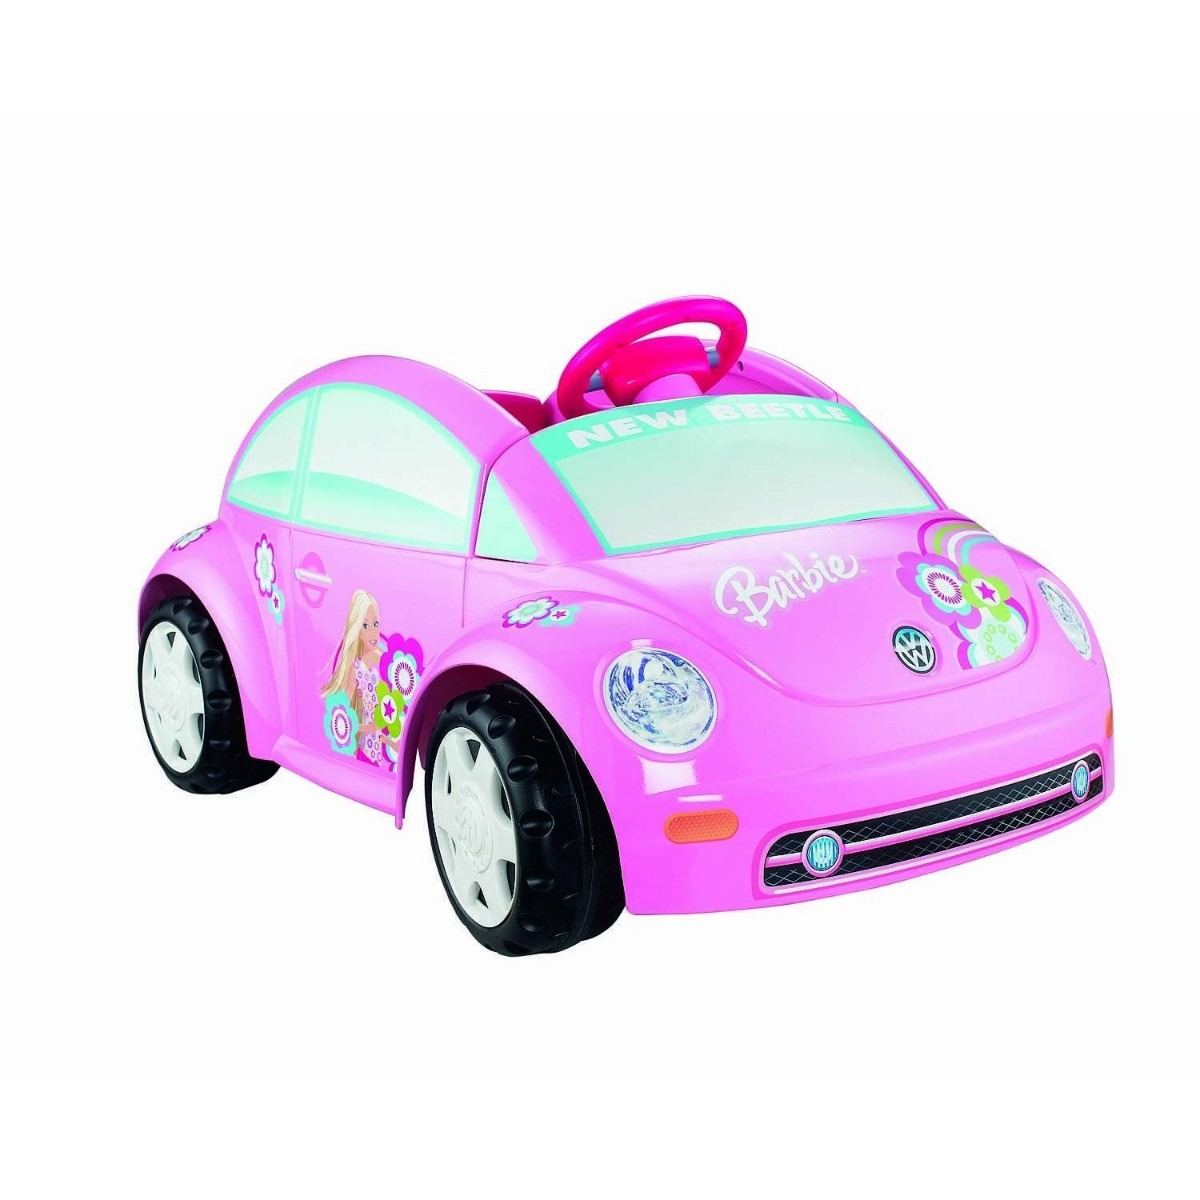 Carrito Montable Juguete Power Barbie Volkswagen Ninas Hm4